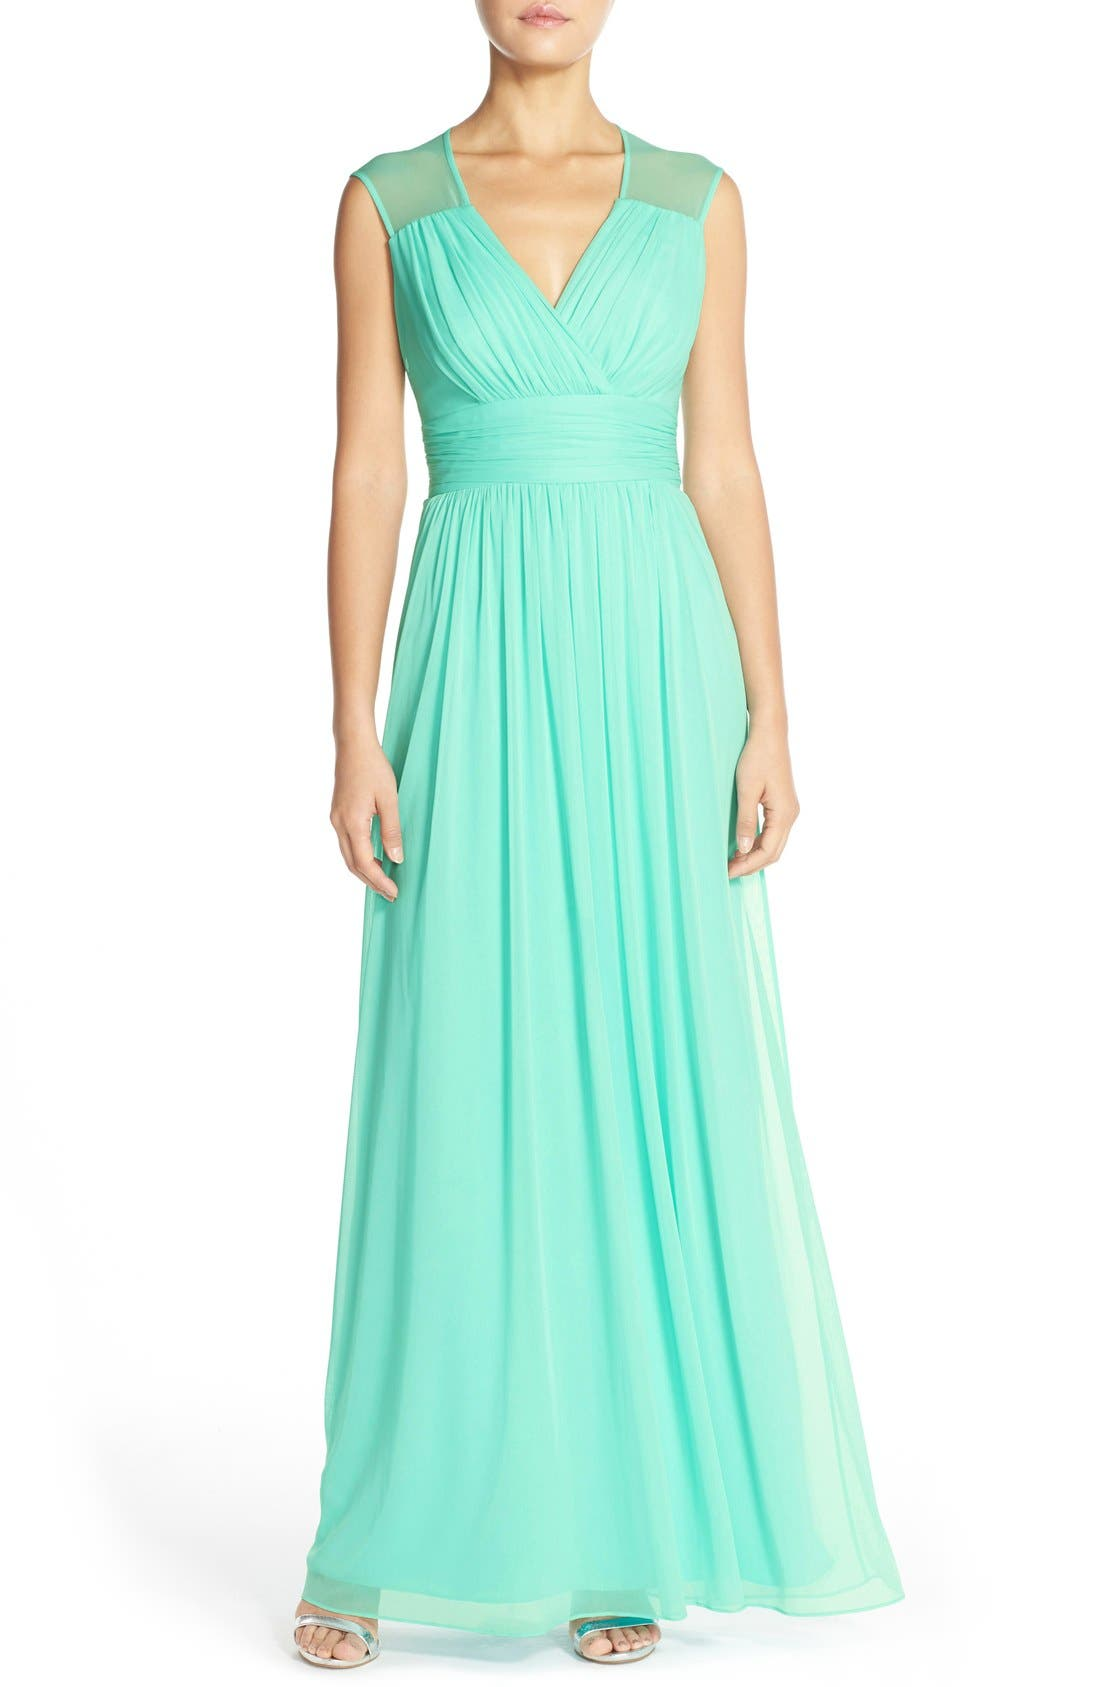 Alternate Image 1 Selected - Alfred Sung Shirred ChiffonCap Sleeve Gown